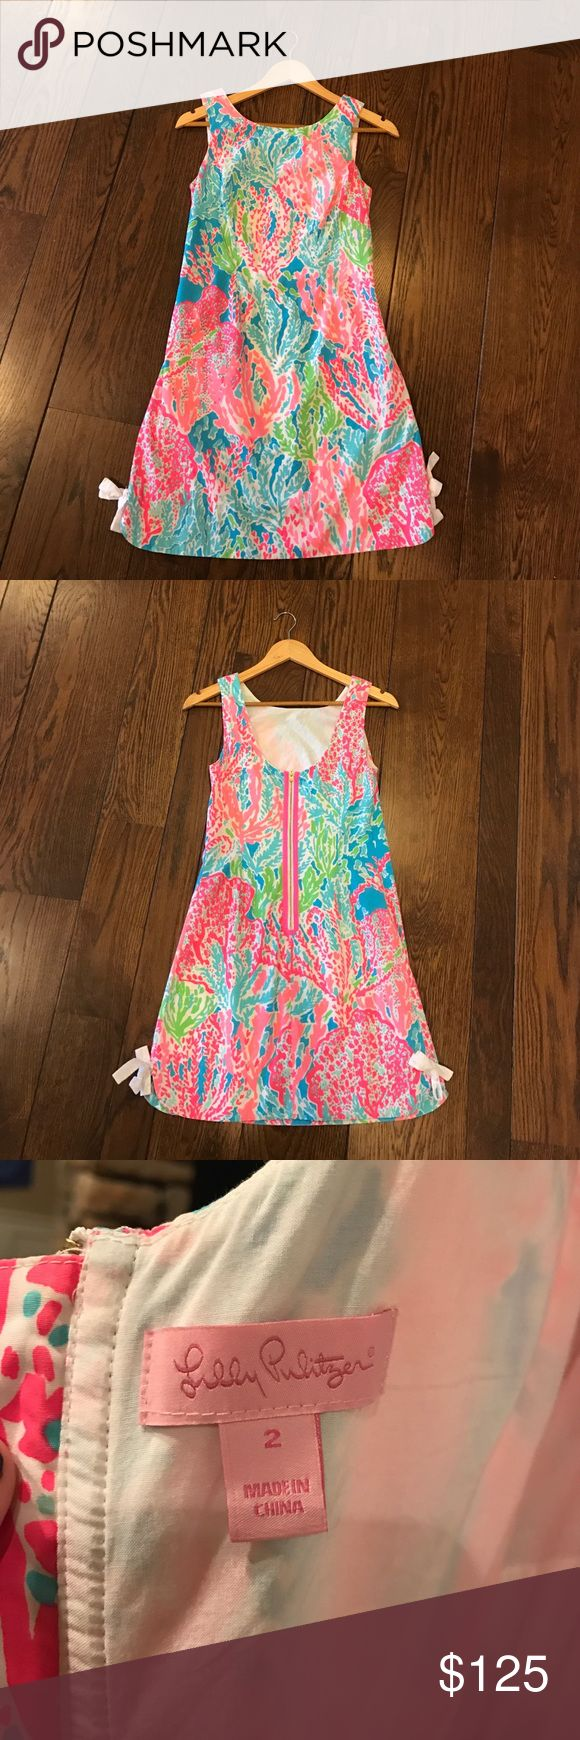 Lilly Pulitzer Delia Dress Lilly Pulitzer Let's Cha Cha Delia Dress! Cute and flattering dress perfect for all occasions! Bought for a wedding and only worn once! Lilly Pulitzer Dresses Mini